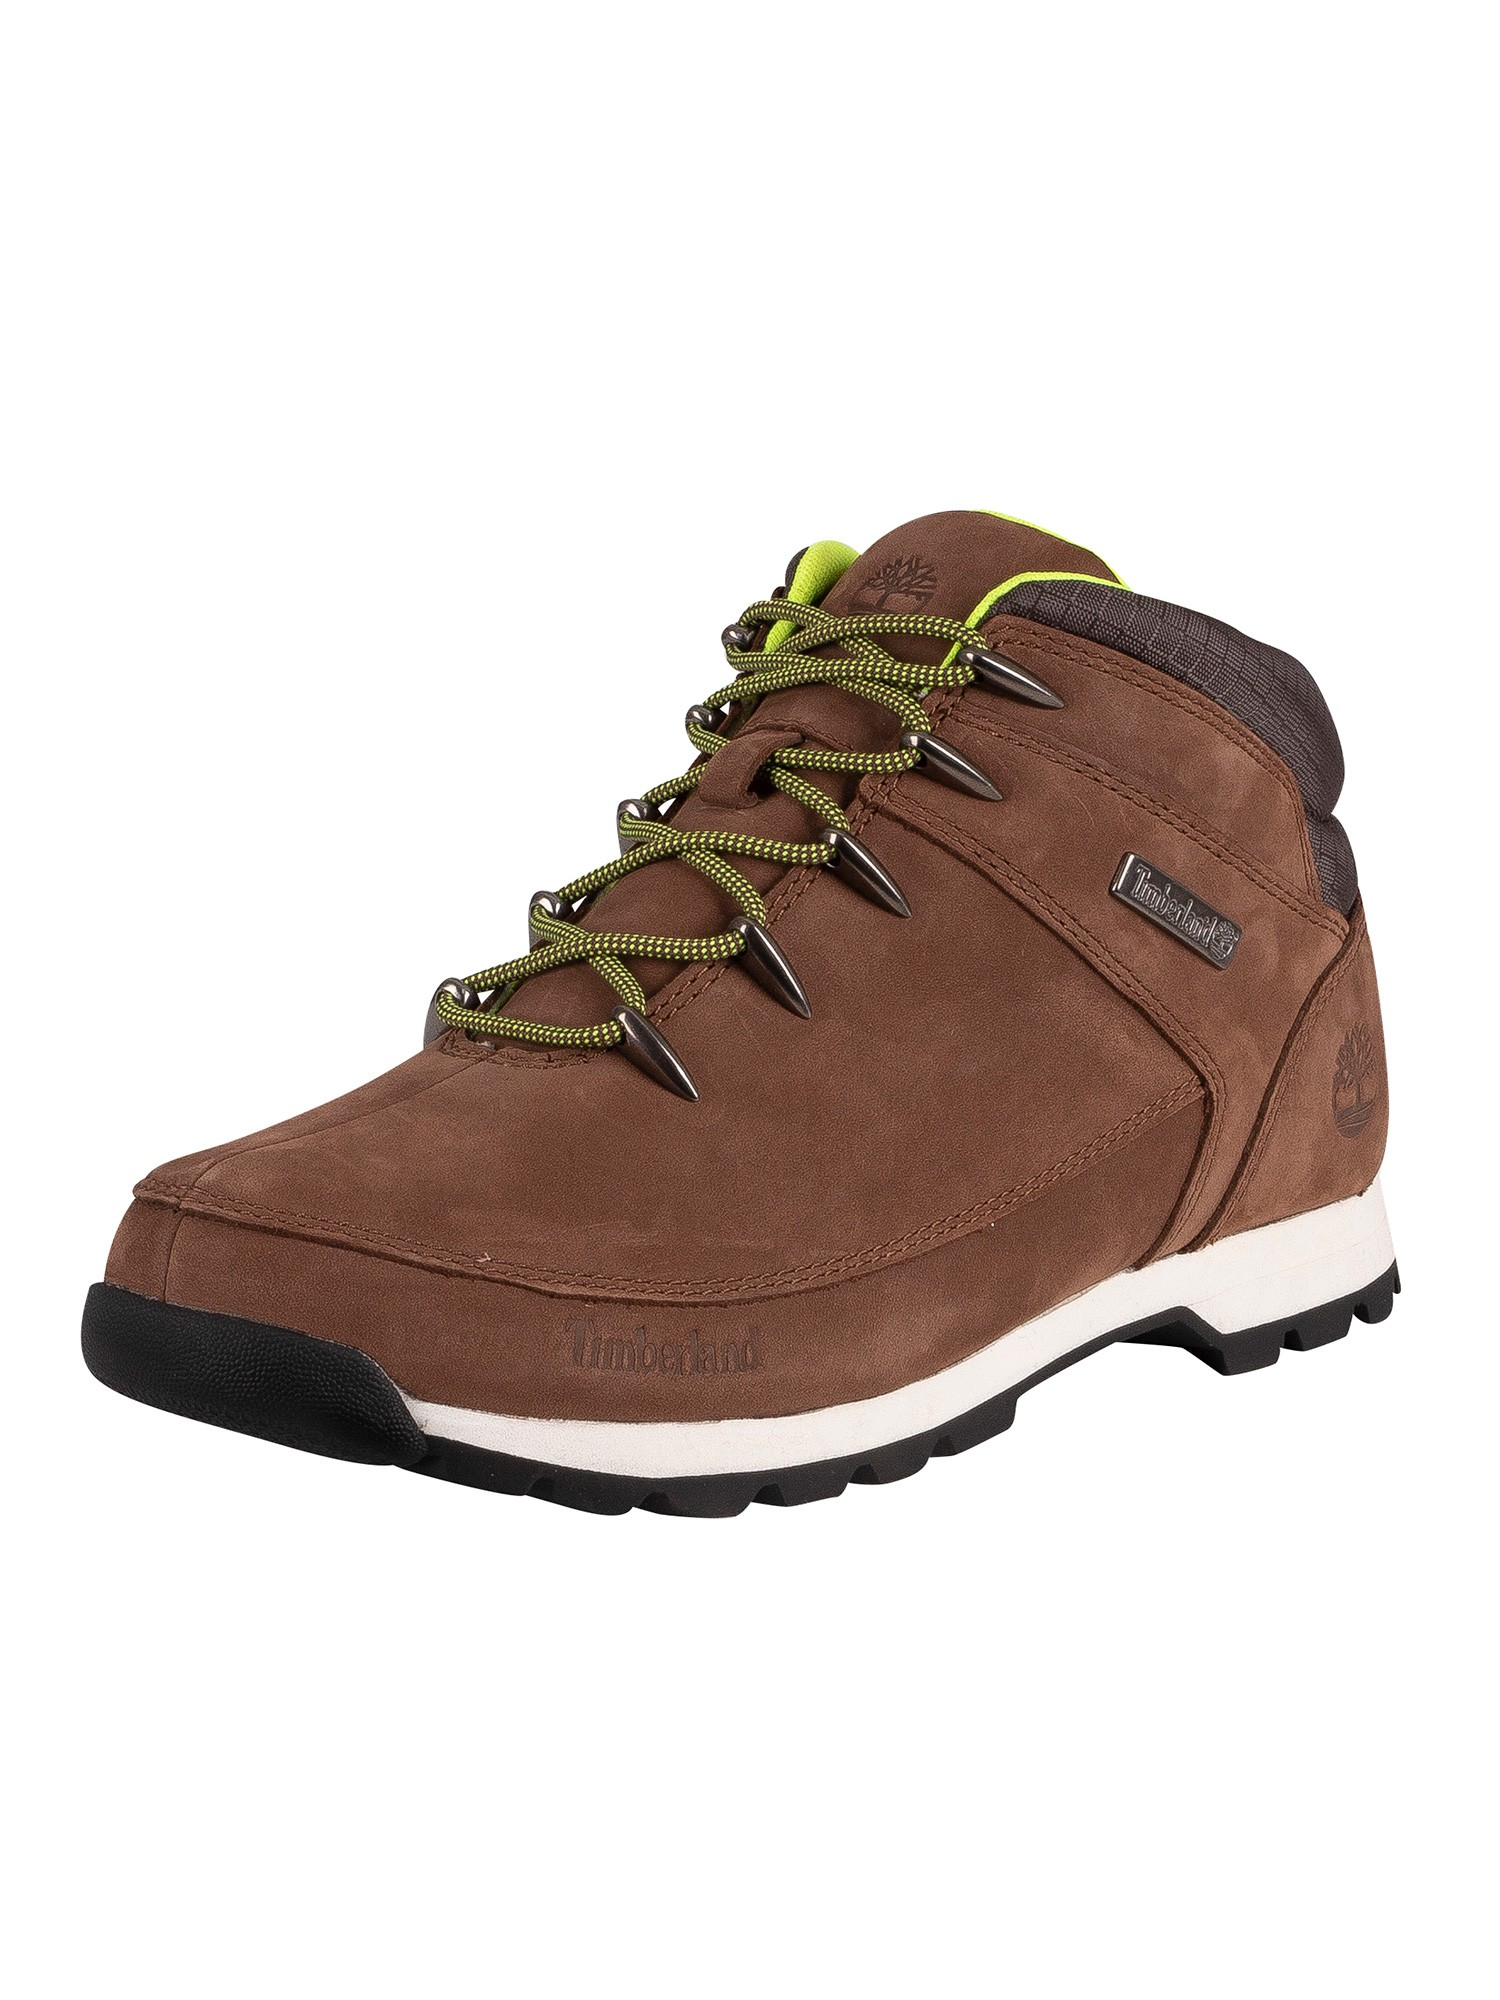 Euro Sprint Mid Hiker Leather Boots